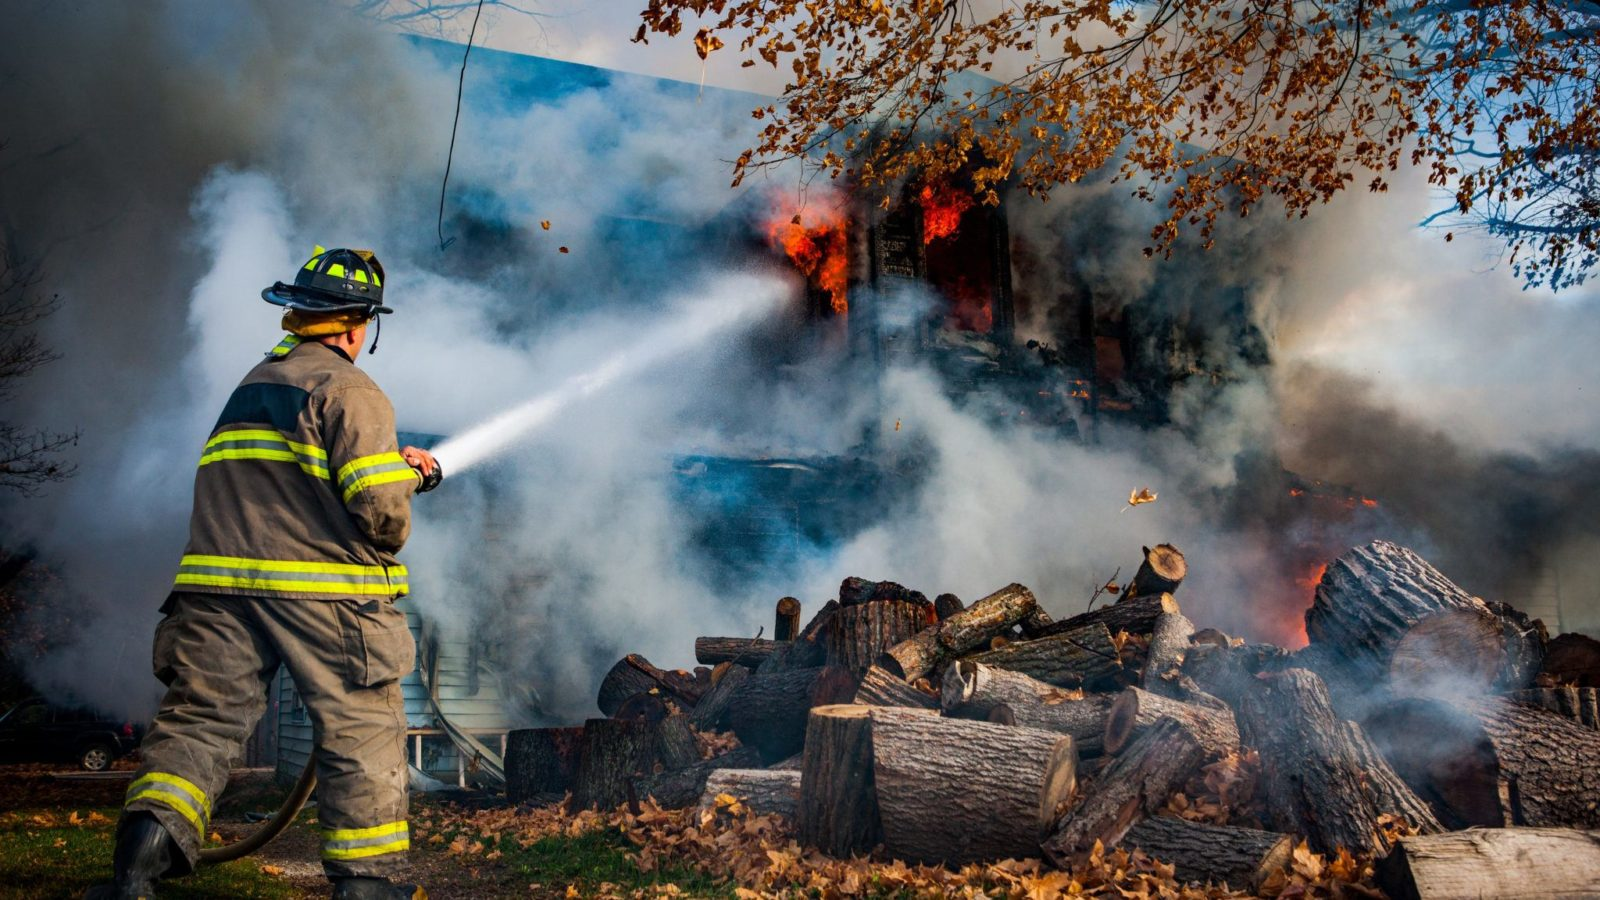 Firefighter at house with hose